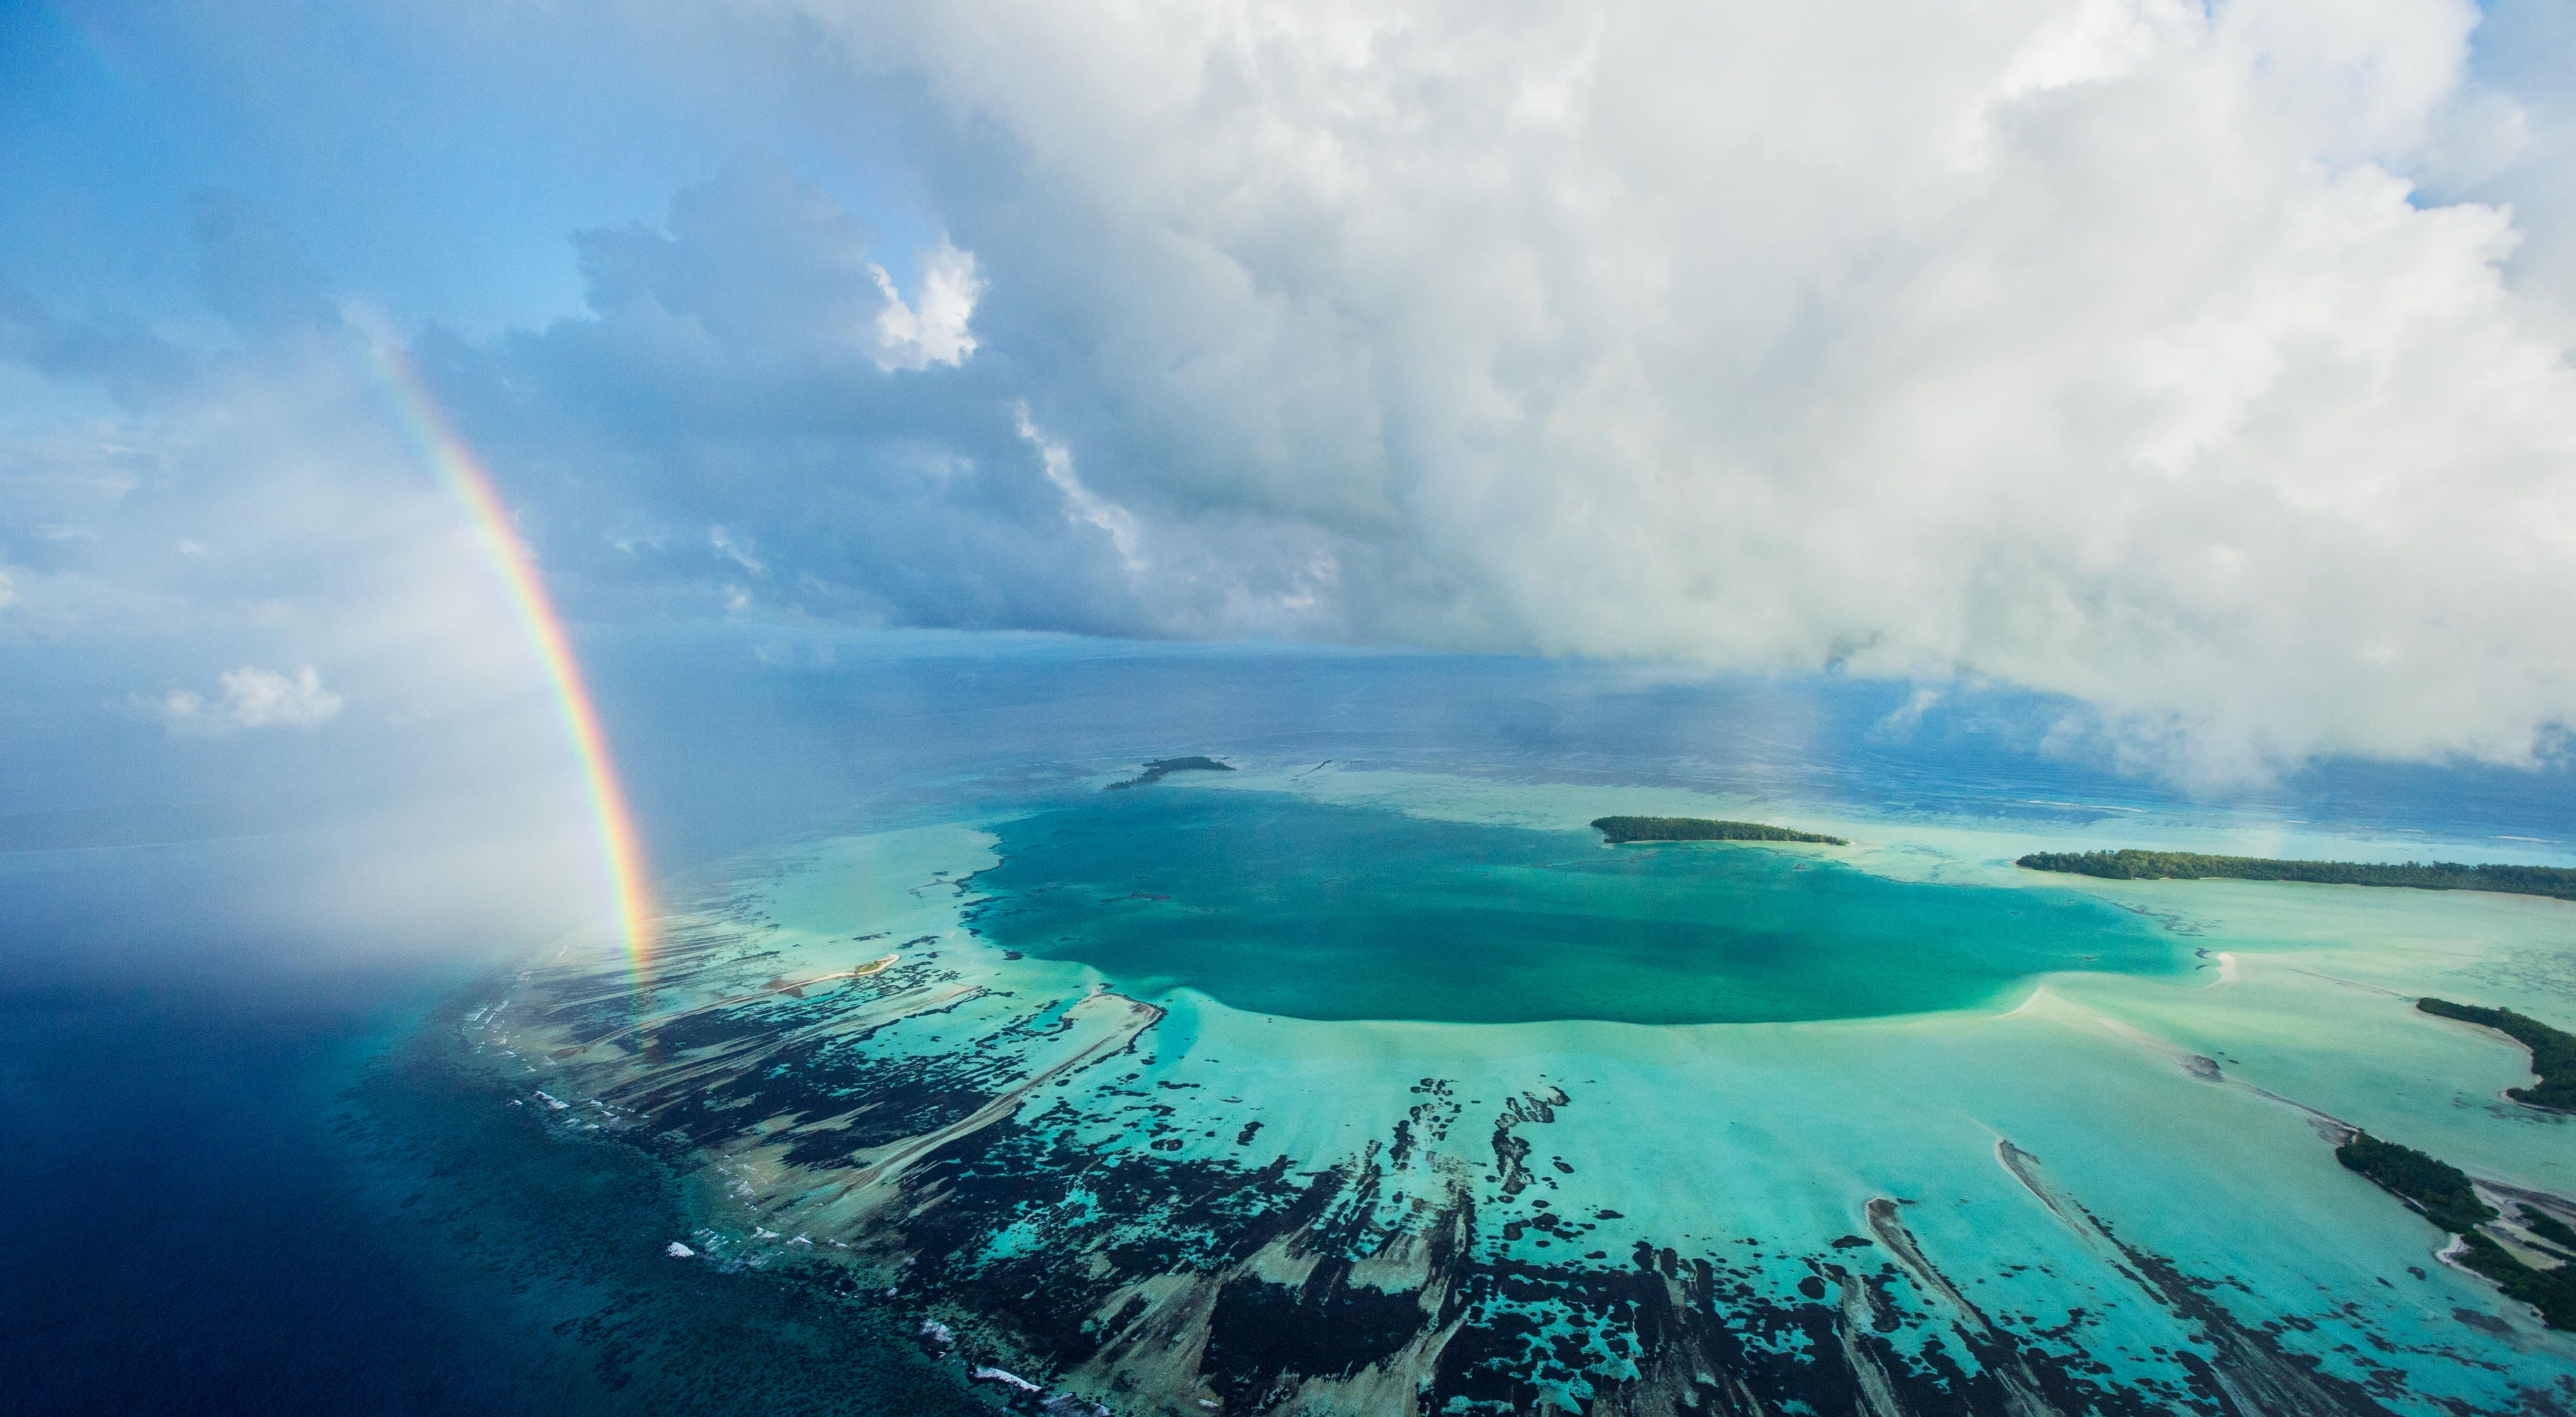 A rainbow ends at an aquamarine atoll